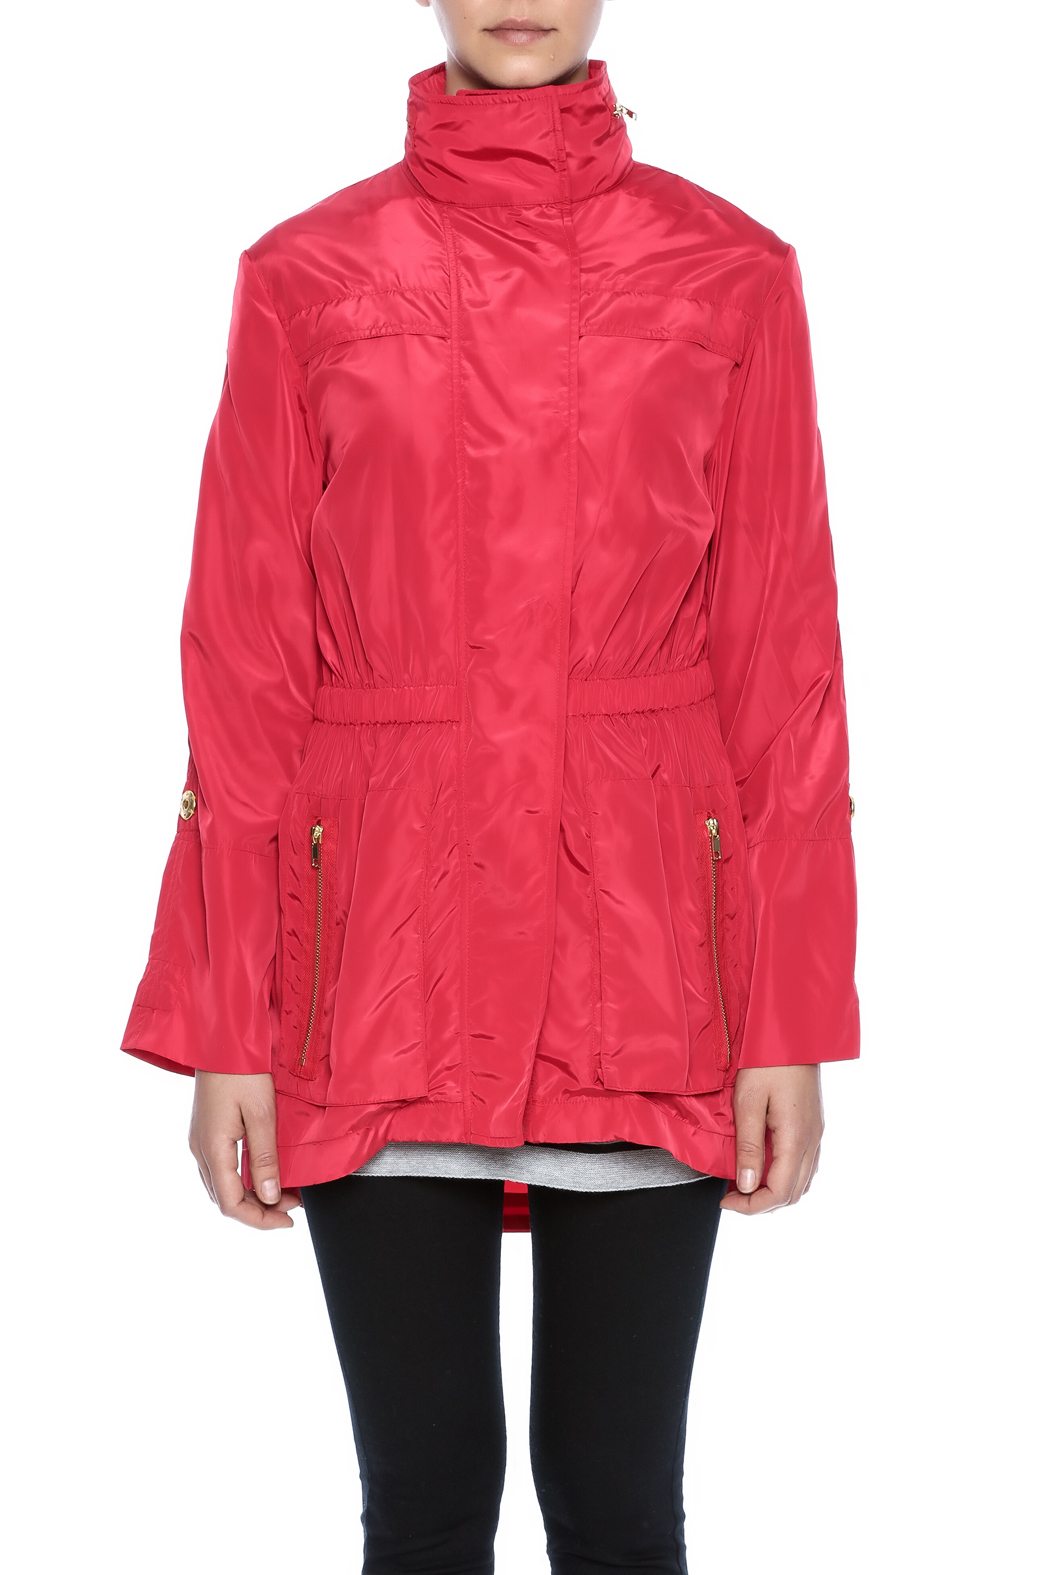 Ciao Milano Red Hooded Jacket - Side Cropped Image